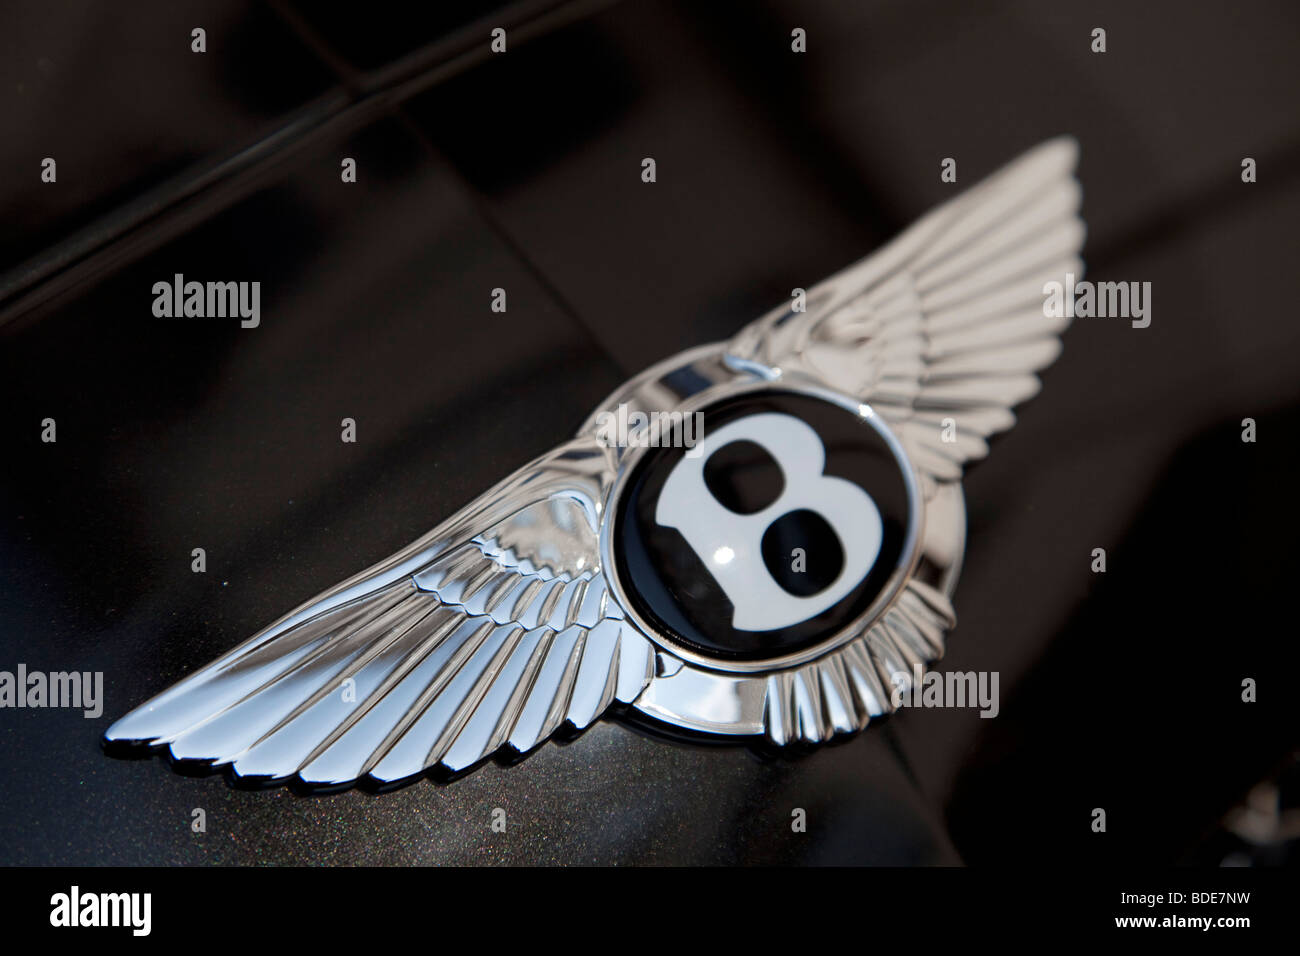 Bentley-Auto-Plakette. Stockbild